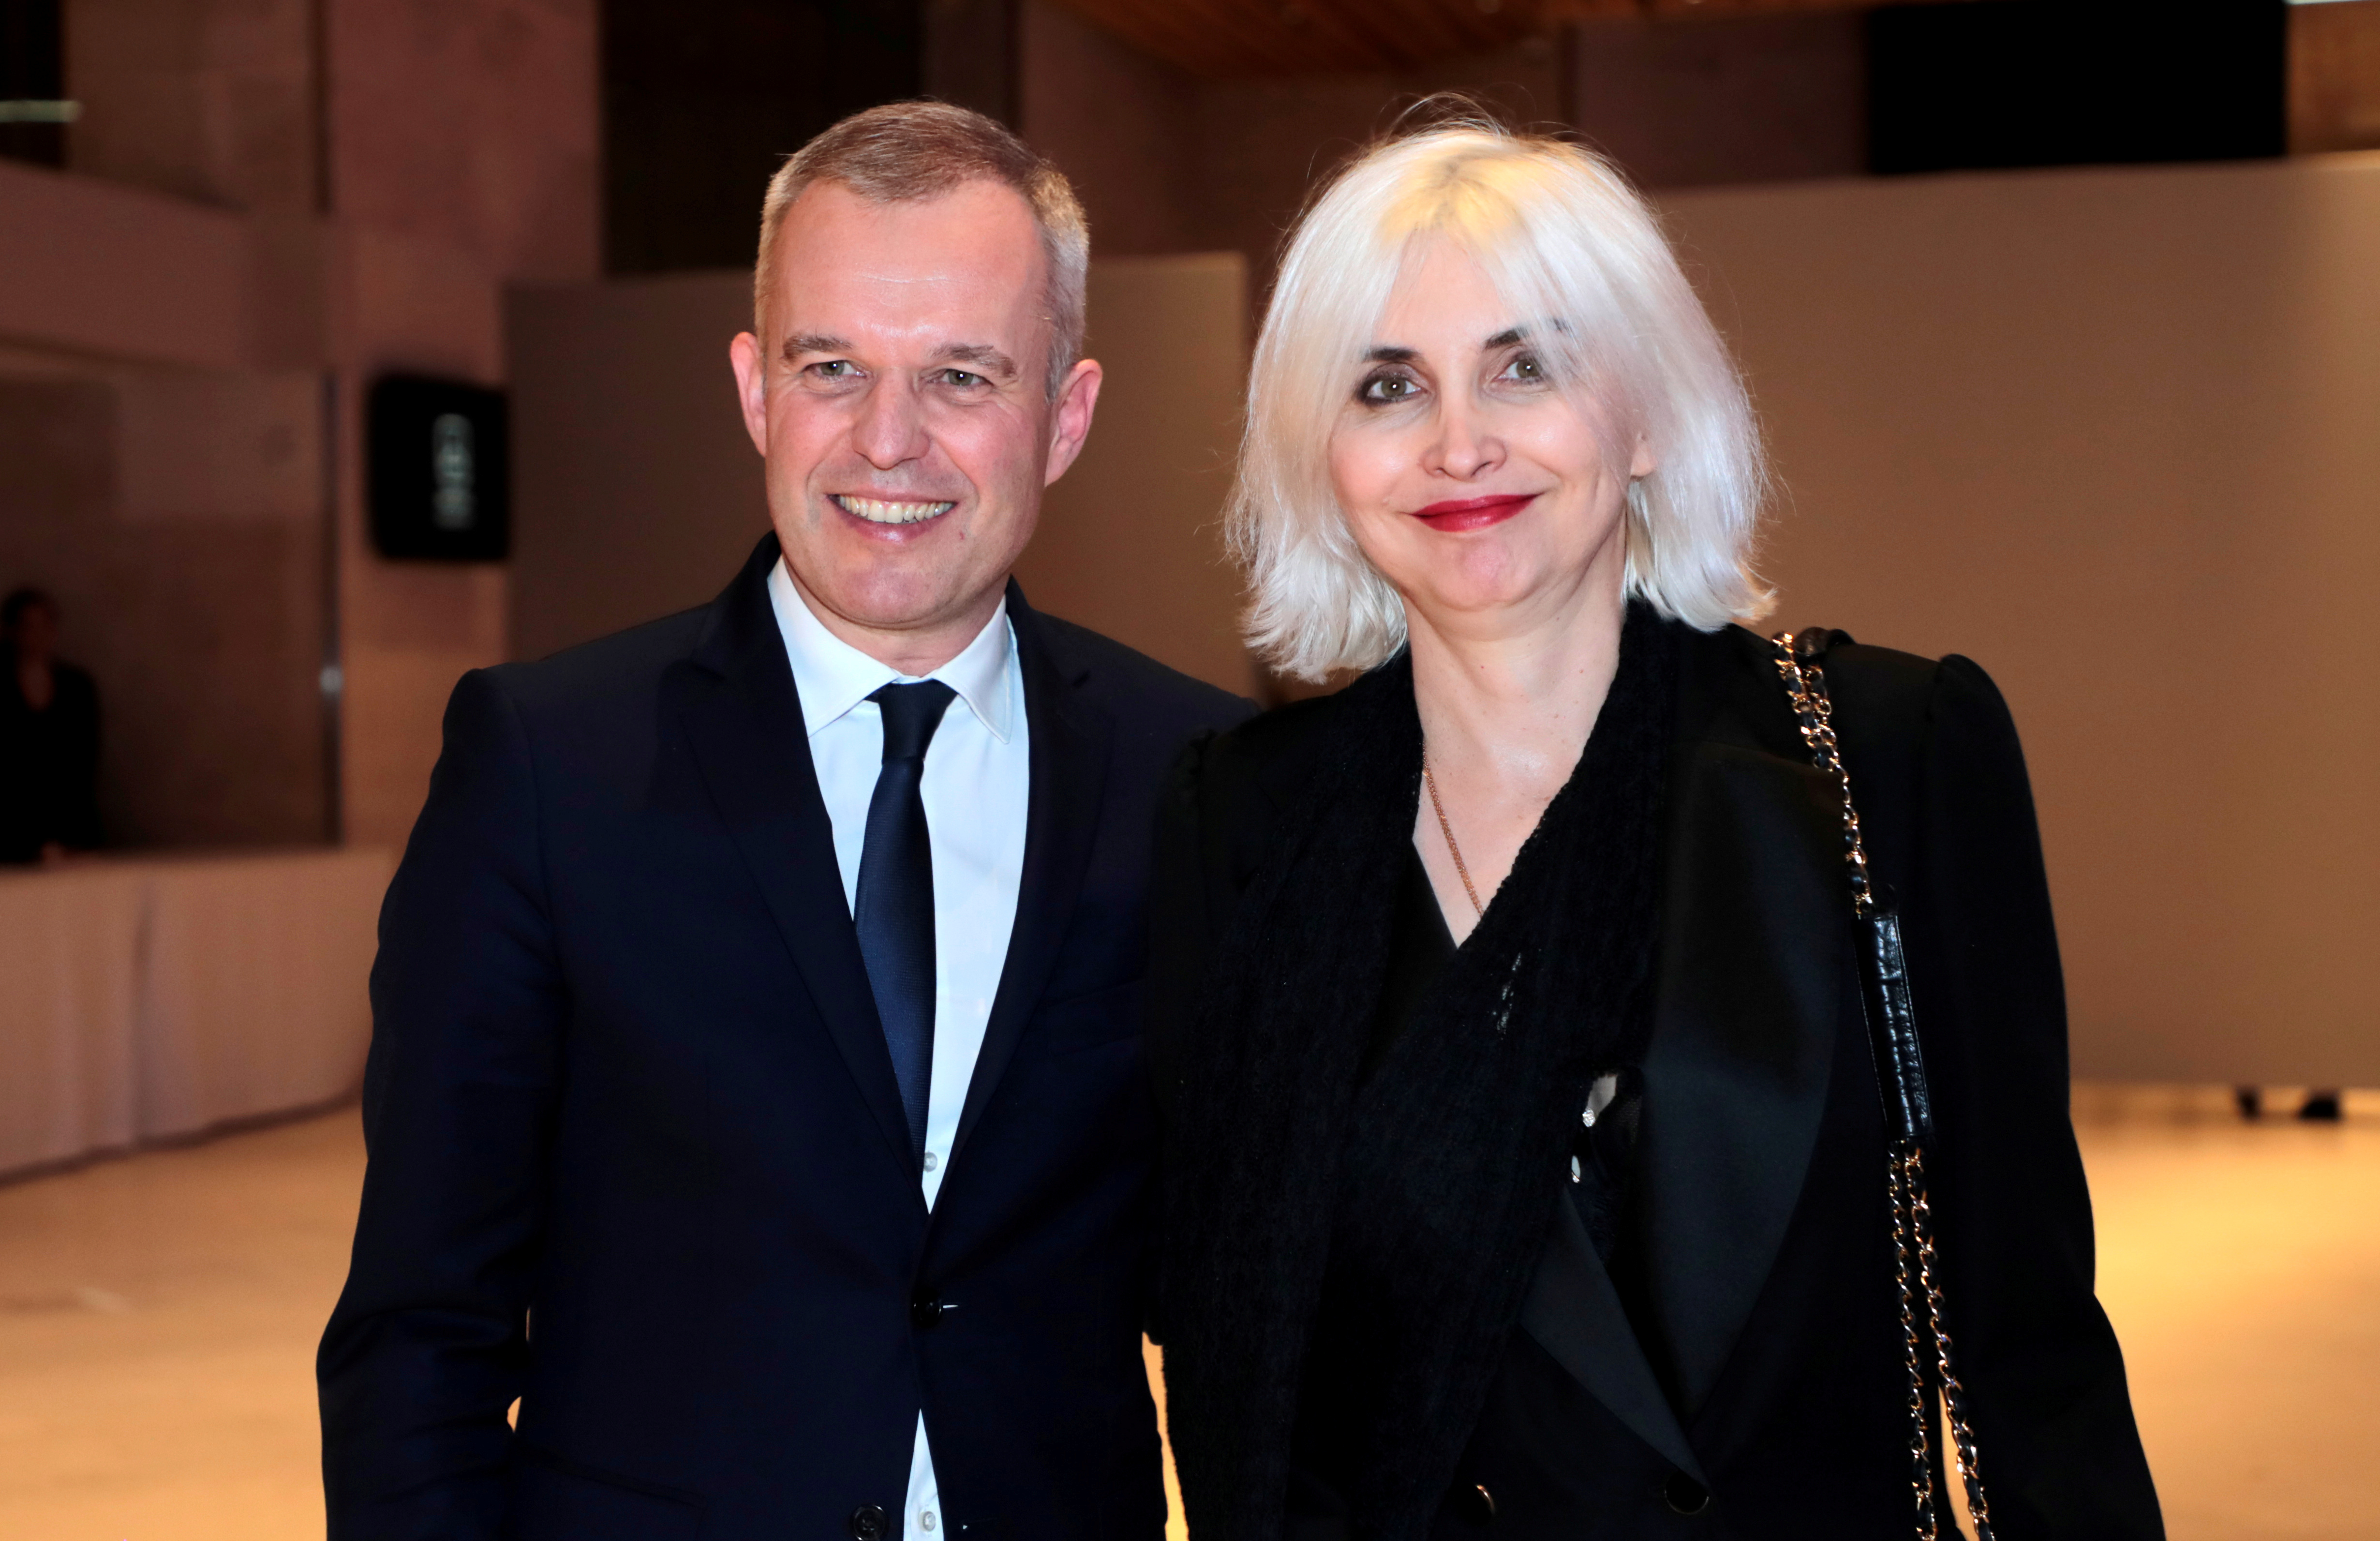 FILE PHOTO: French Ecology Minister Francois de Rugy and his wife, Severine Servat arrive for the 34th annual dinner of the Representative Council of Jewish Institutions of France (CRIF - Conseil Representatif des Institutions juives de France) on February 20, 2019, at the Louvre Carrousel in Paris. Ludovic Marin/Pool via REUTERS